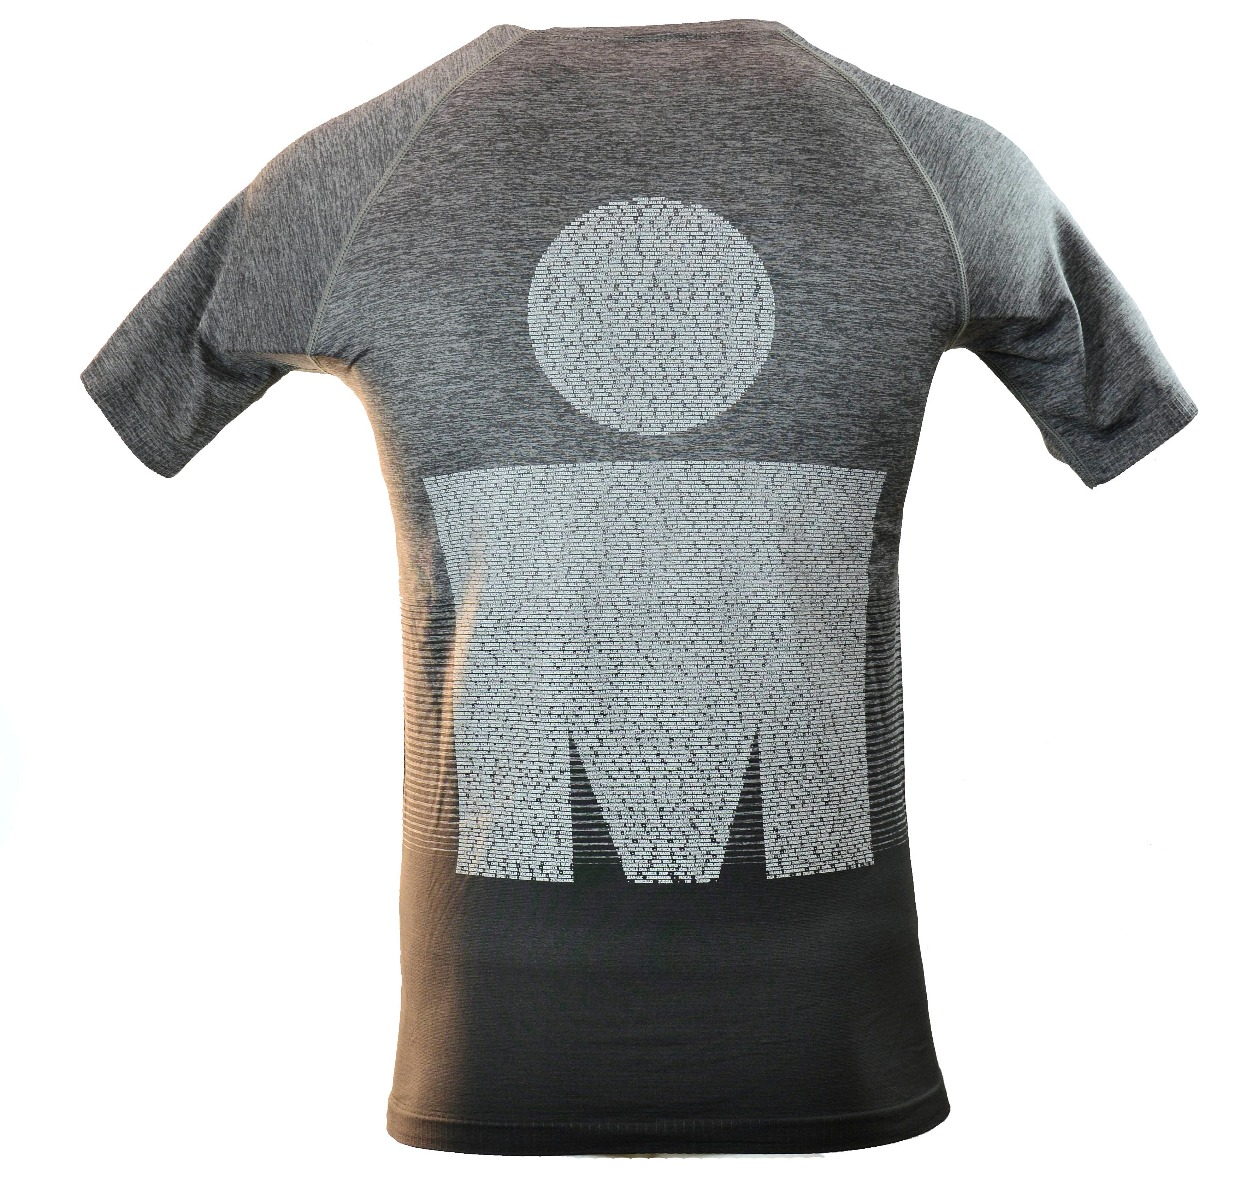 IRONMAN 70.3 VICHY 2019 MEN'S NAME PERFORMANCE TEE